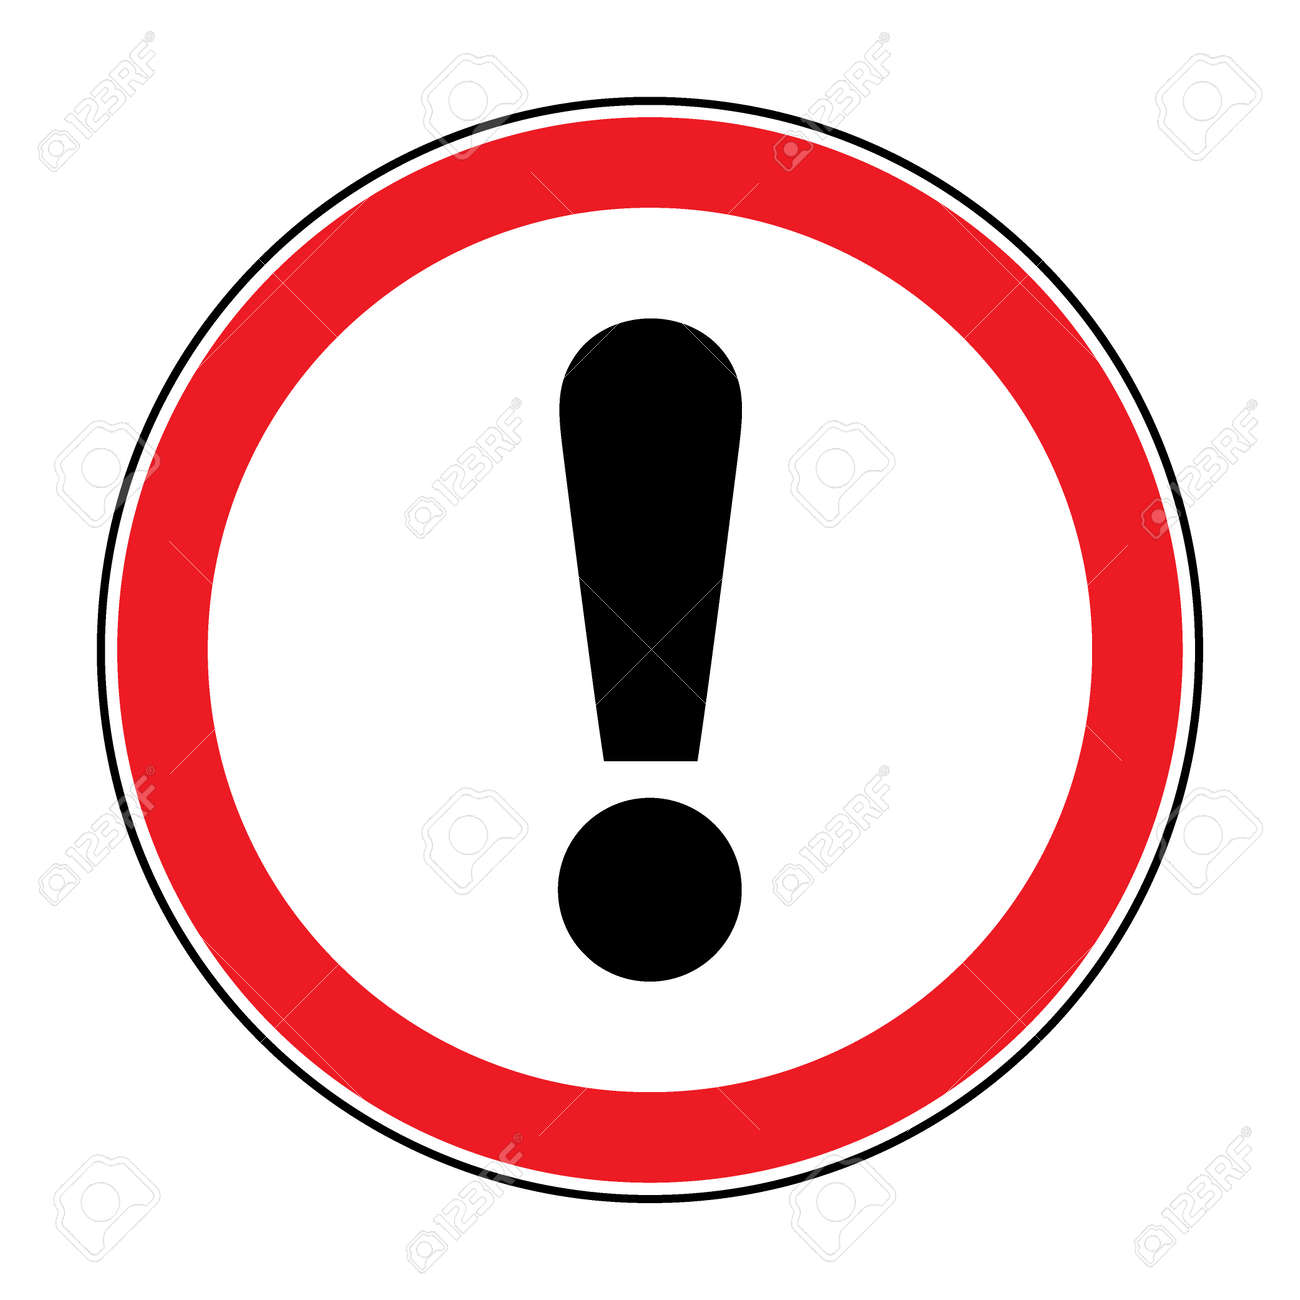 Hazard warning attention sign icon in a red circle with icon in a red circle with exclamation mark symbol isolated buycottarizona Image collections